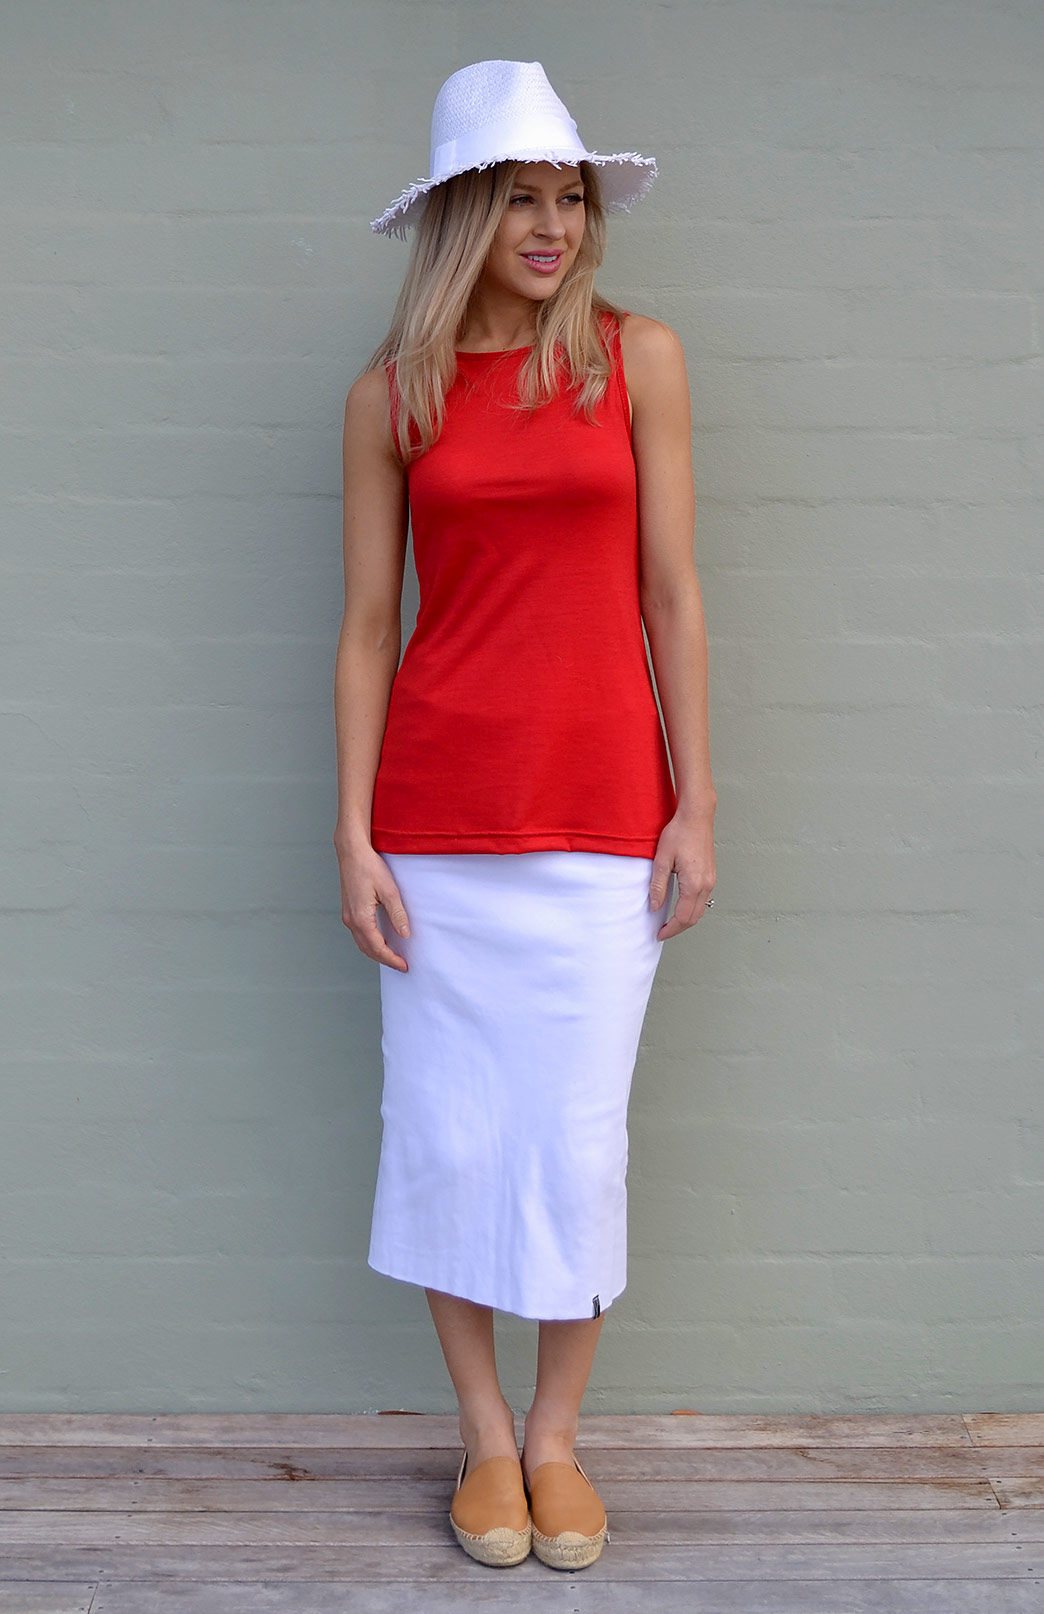 Long Tube Skirt - Organic Cotton - Women's White Organic Cotton Summer Long Tube Skirt - Smitten Merino Tasmania Australia